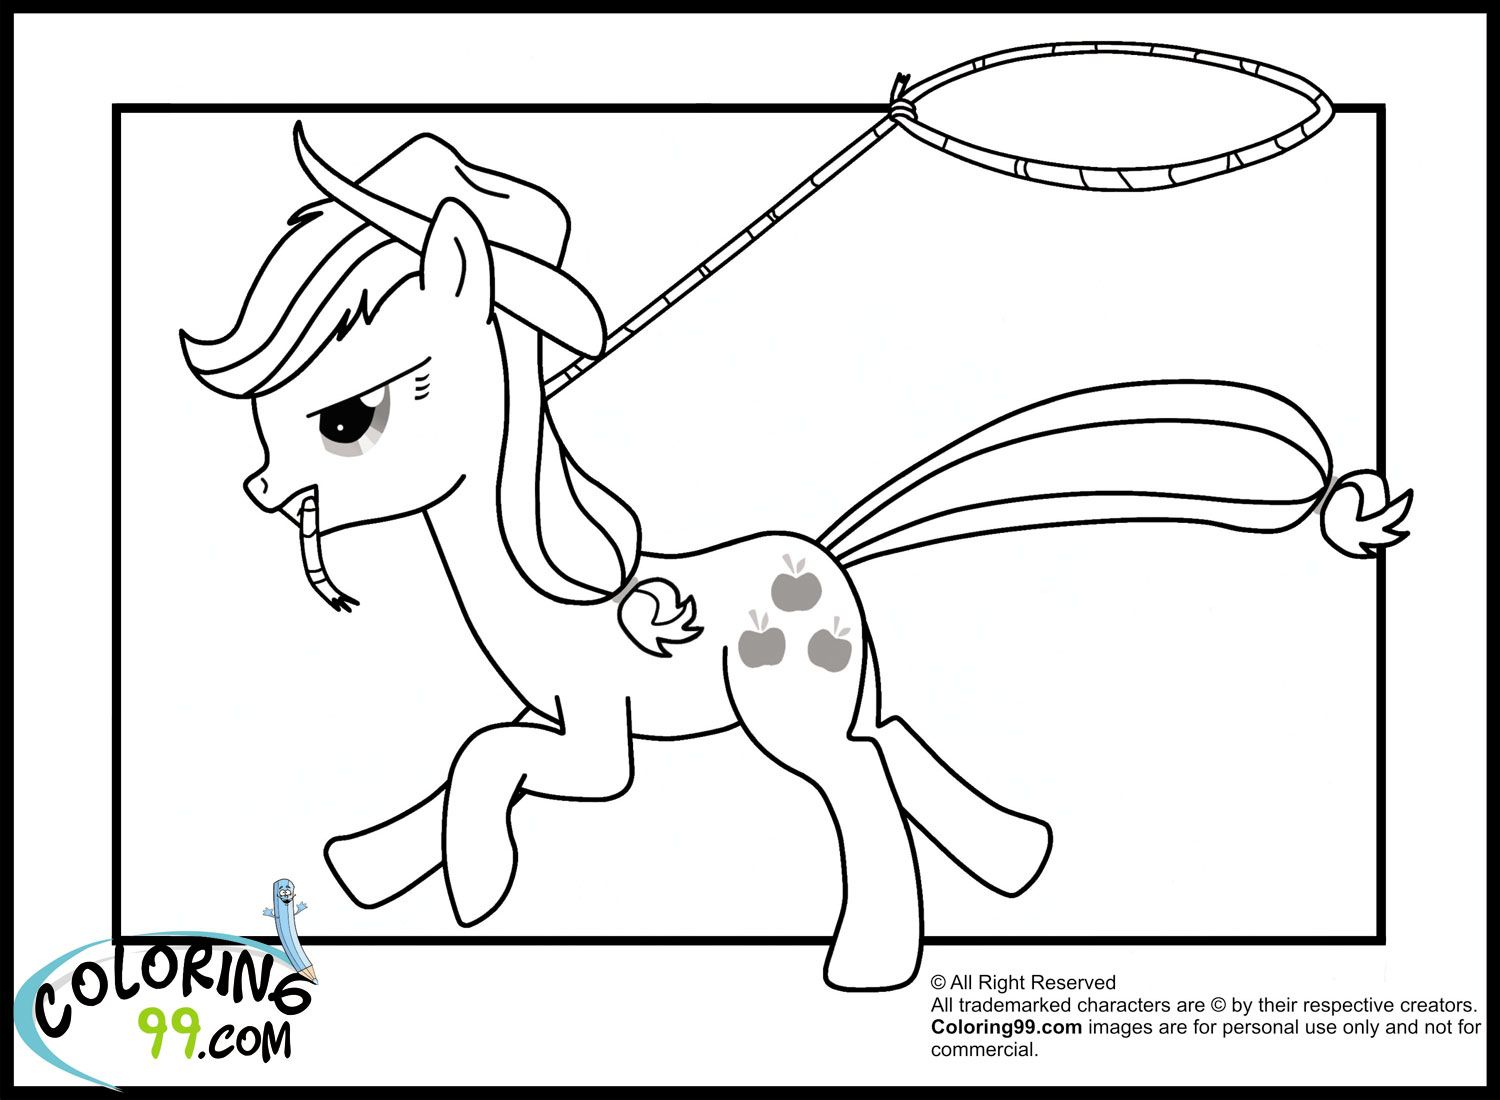 My little pony applejack coloring page - My Little Pony Applejack Cowgirl Coloring Pages Jpg